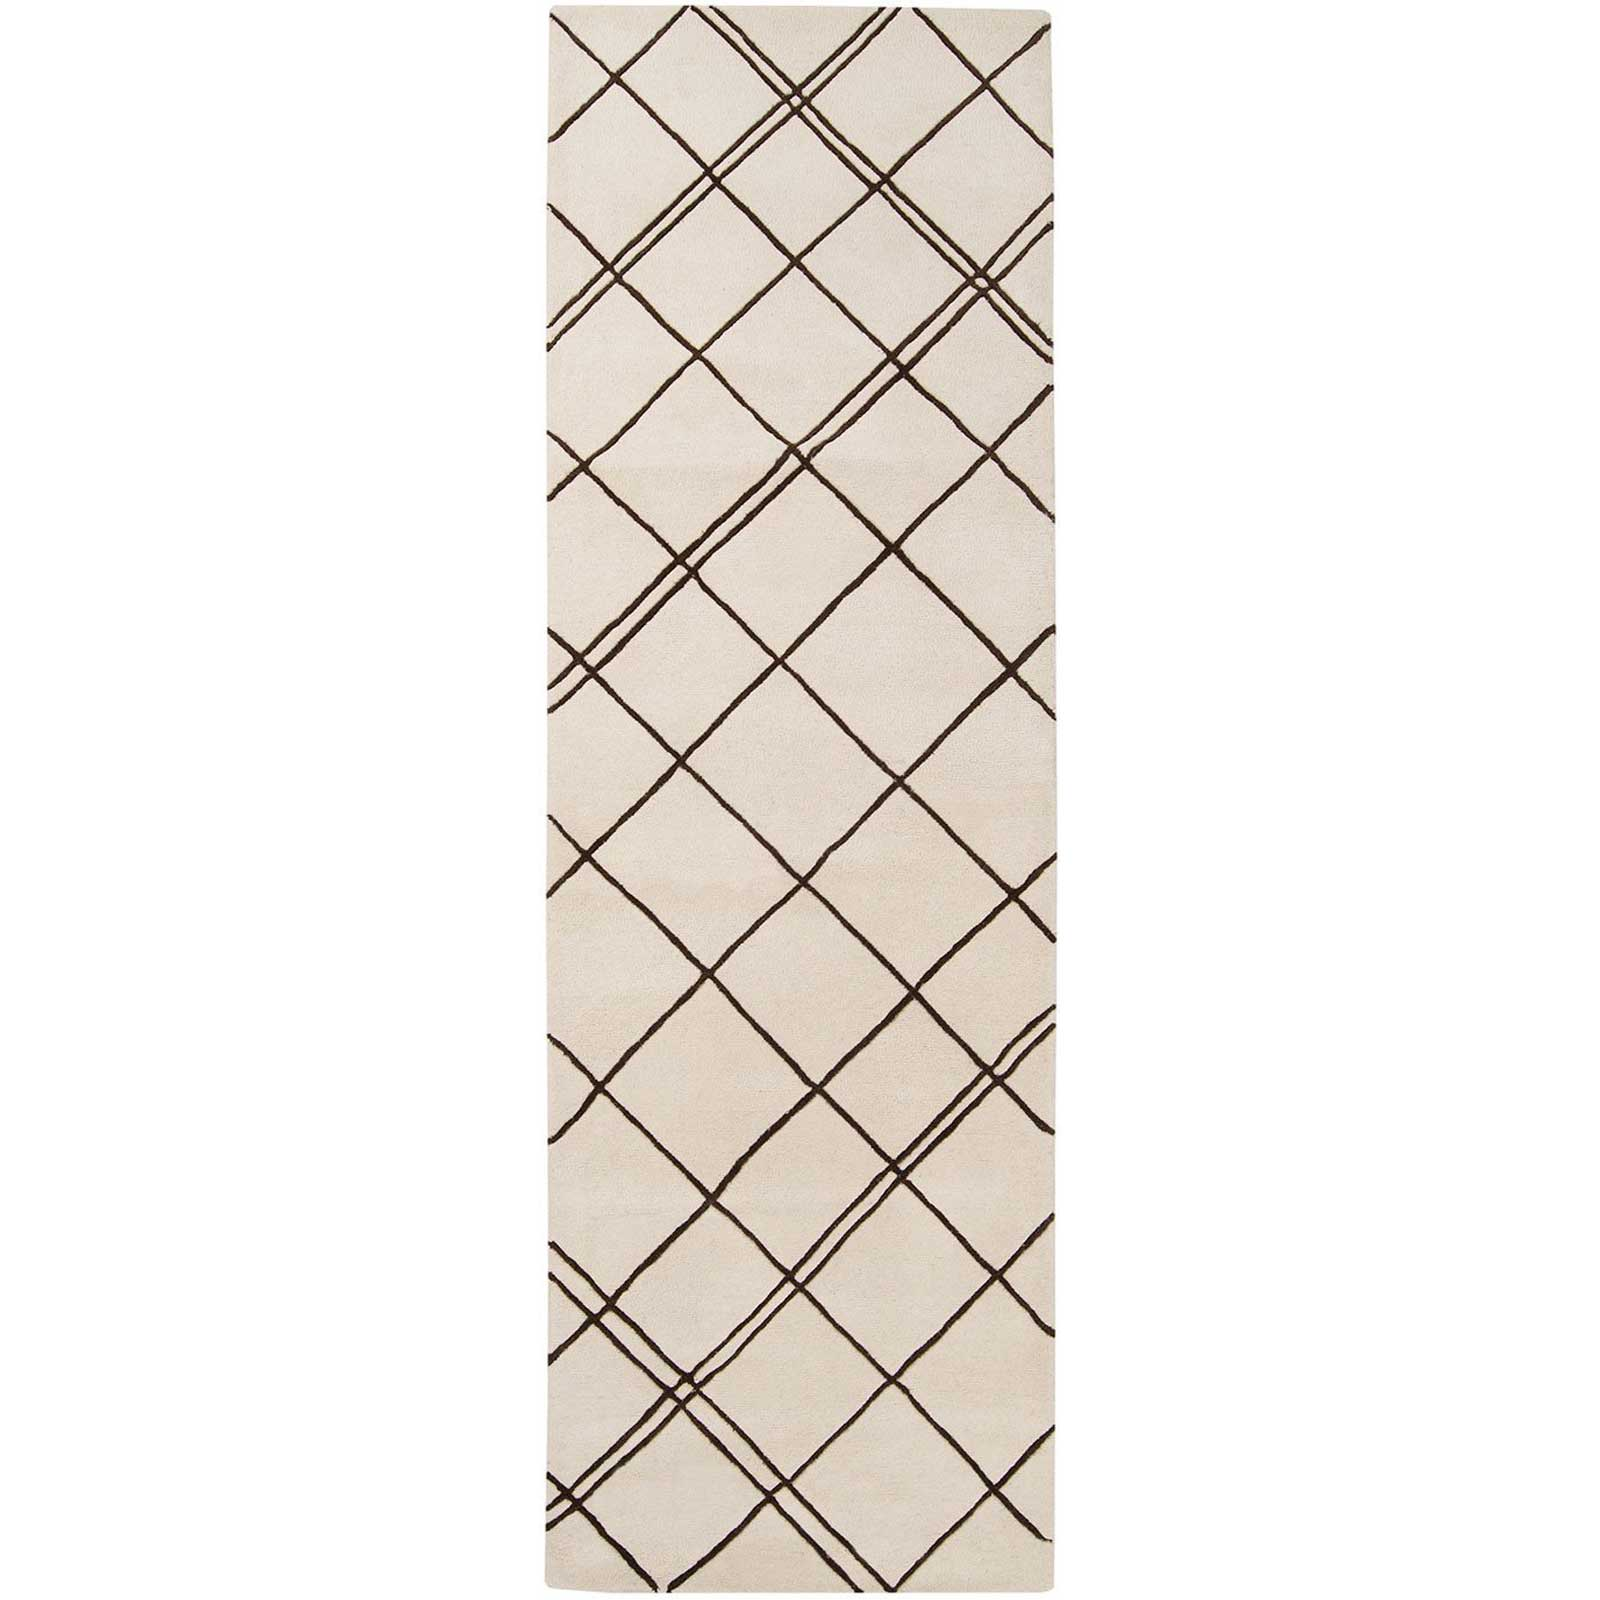 Studio Beige/Chocolate Runner Rug